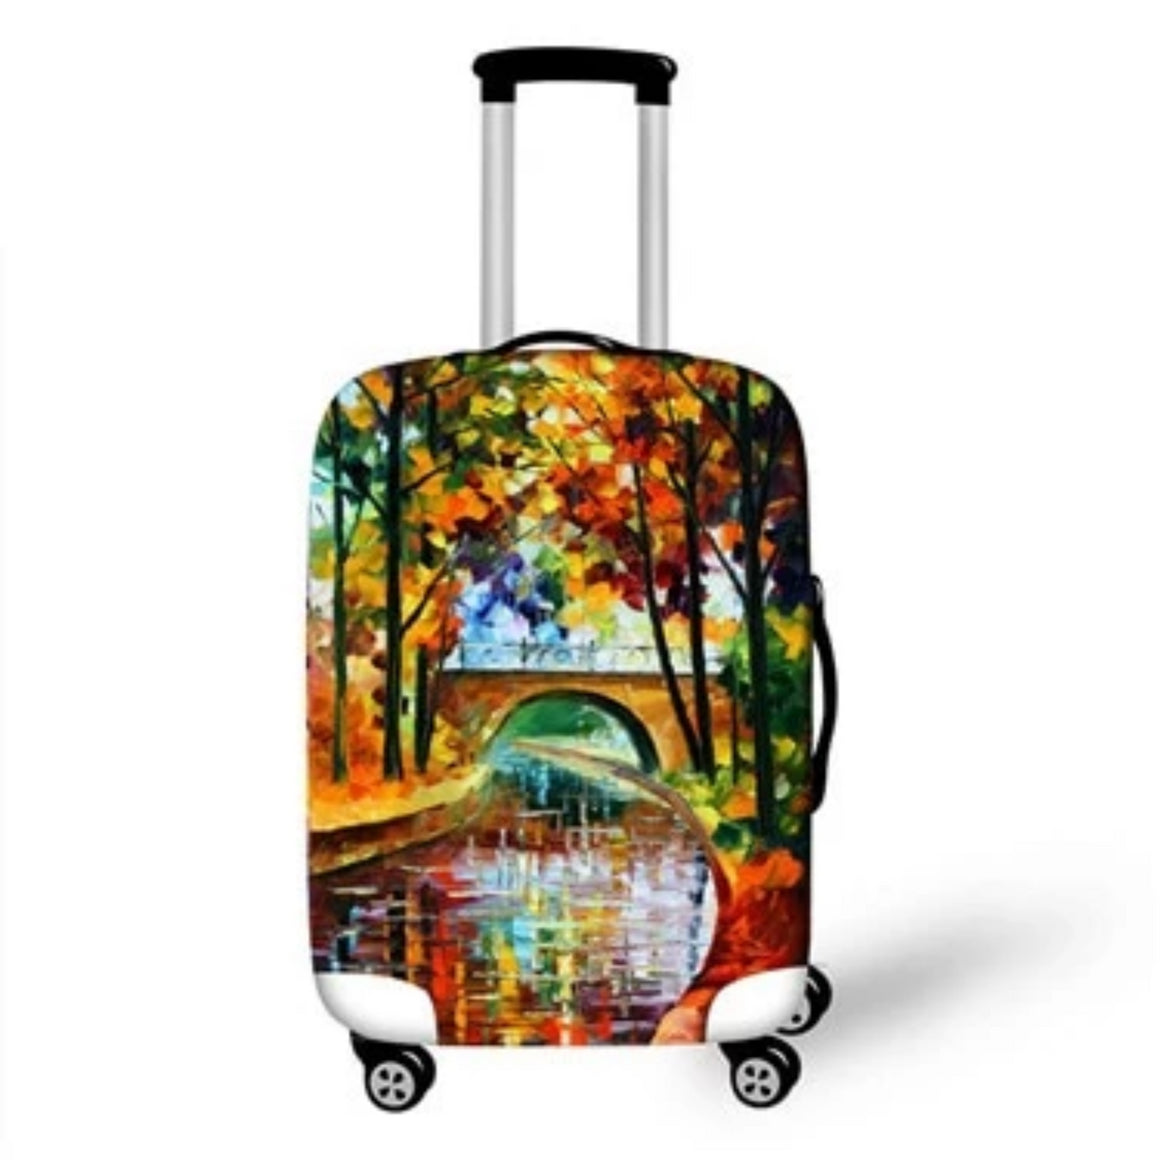 3D Oil Painting Travel Luggage Protective Covers Women Men Dust Proof valise bagages roulettes 70cm Elatic Girls Suitcase Cover